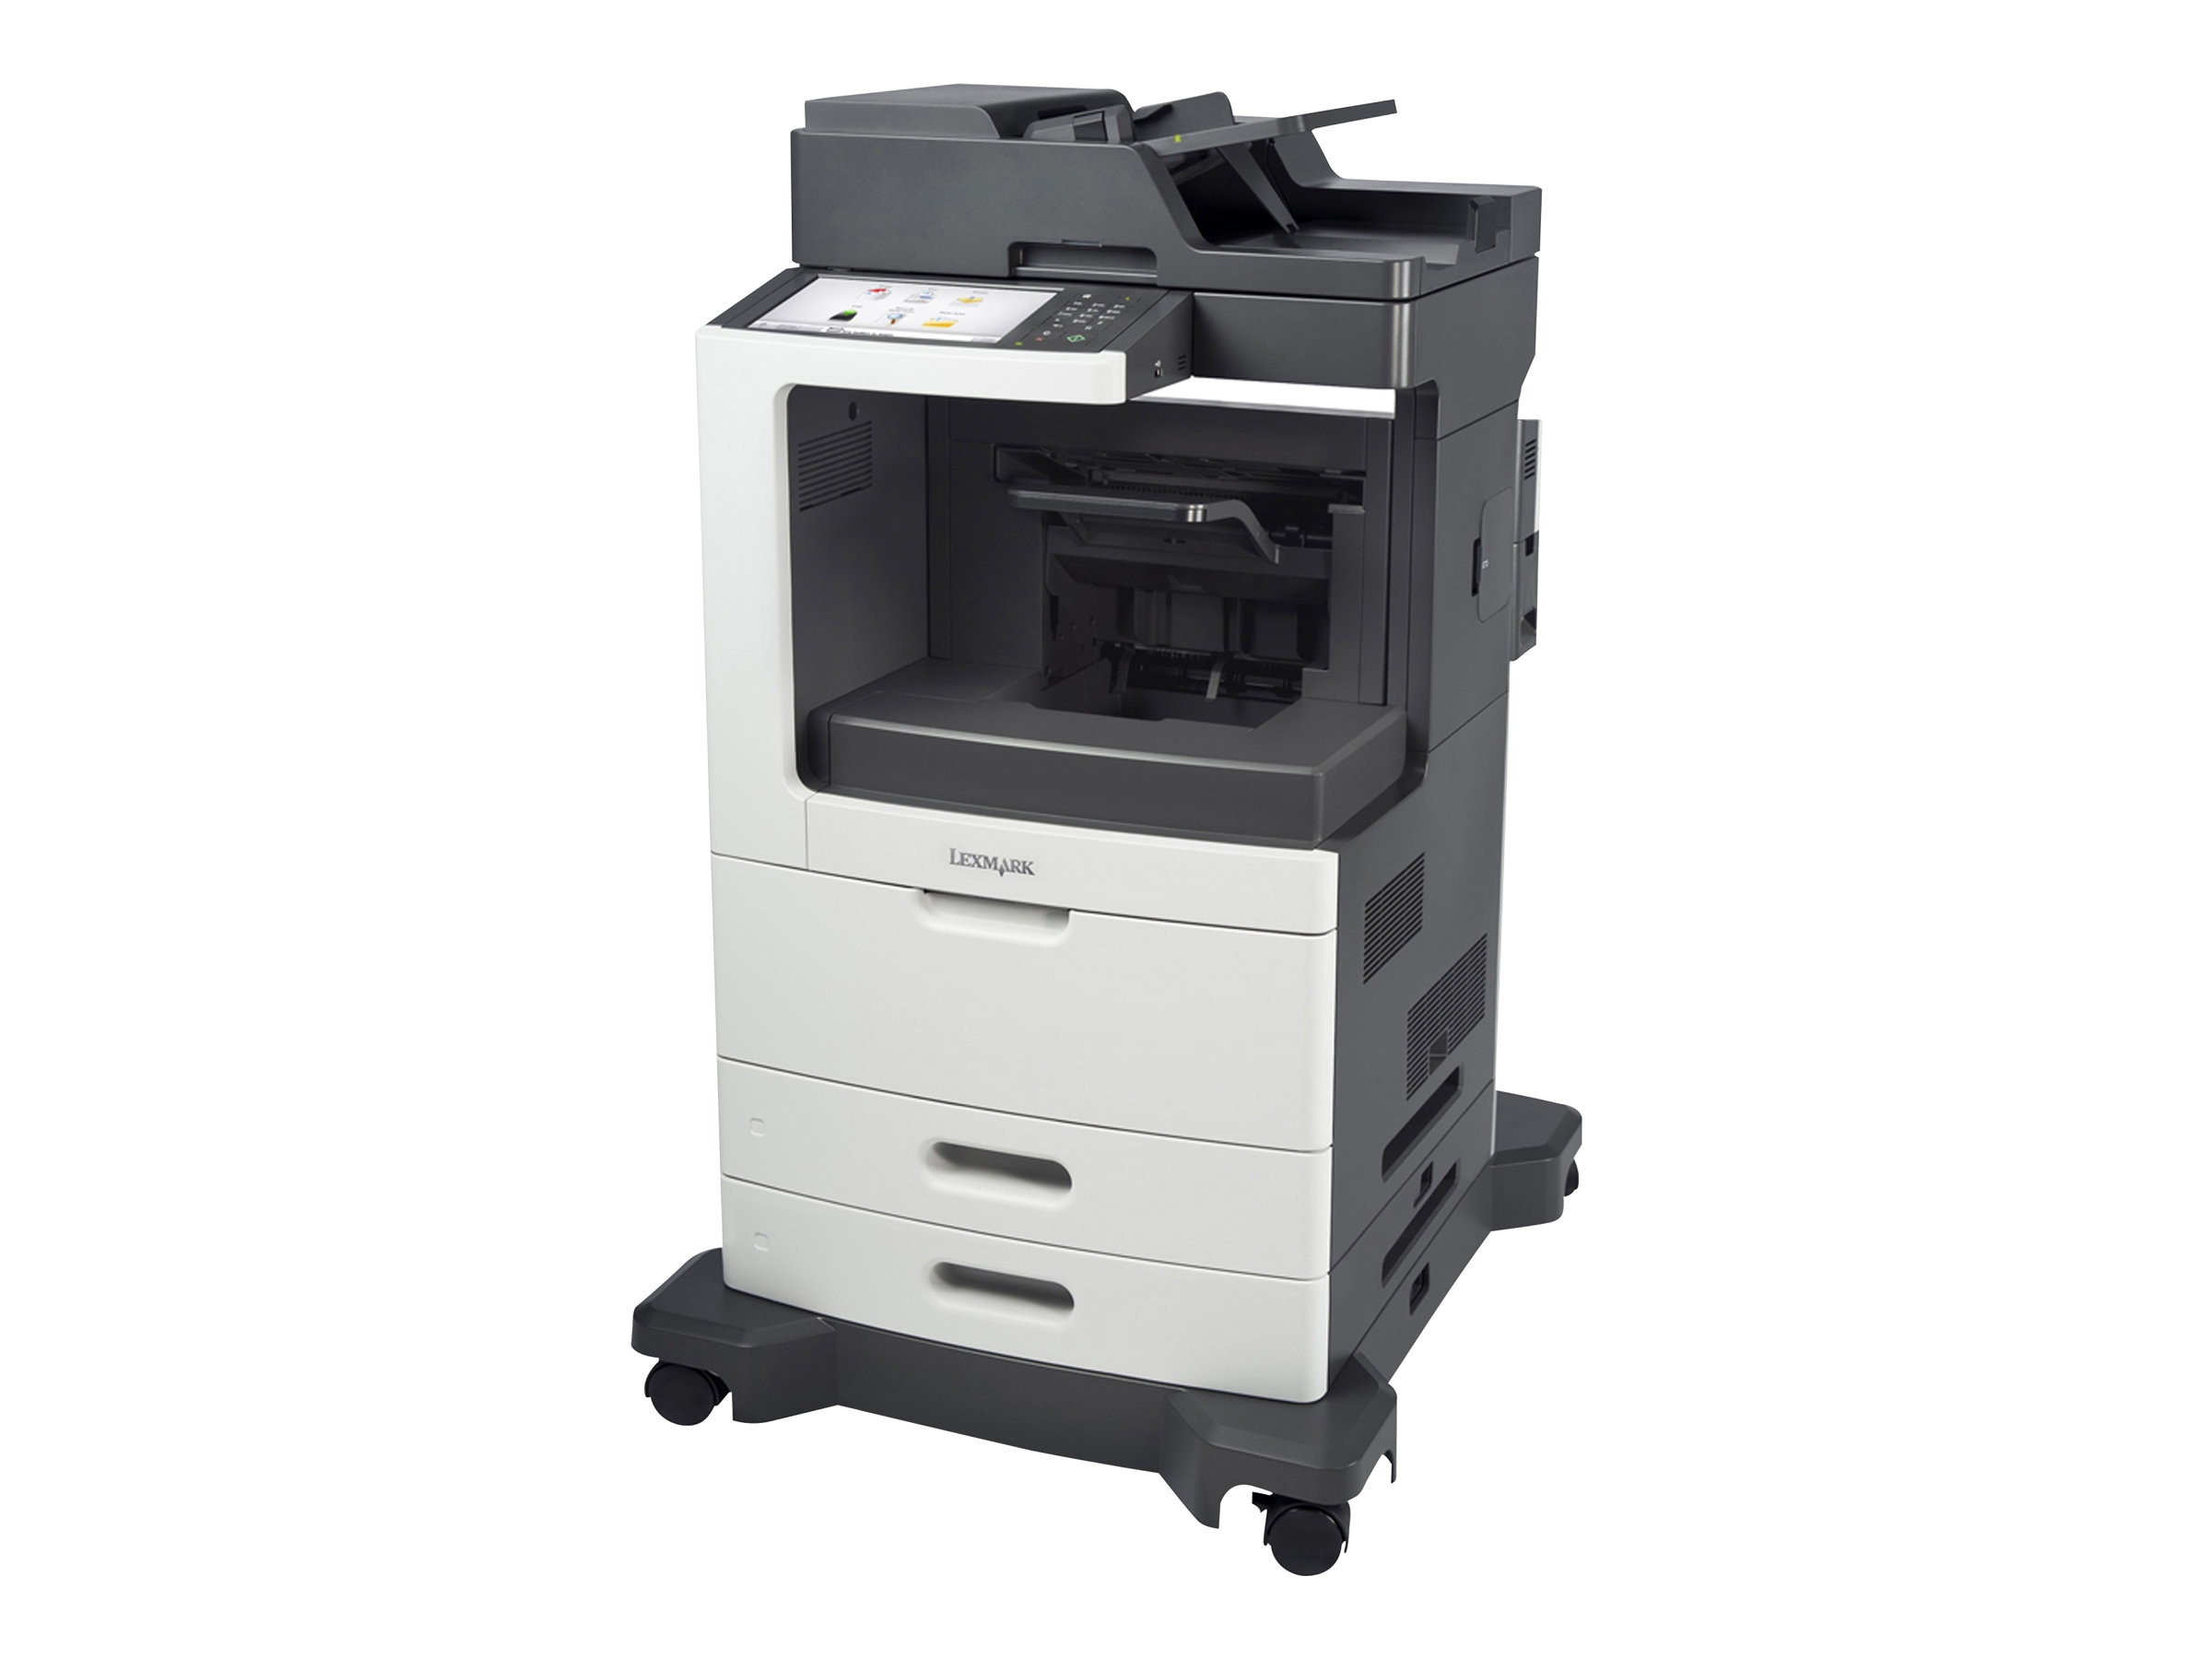 Lexmark MX810dfe Monochrome Laser Multifunction Printer, 24T7408, 14908538, MultiFunction - Laser (monochrome)